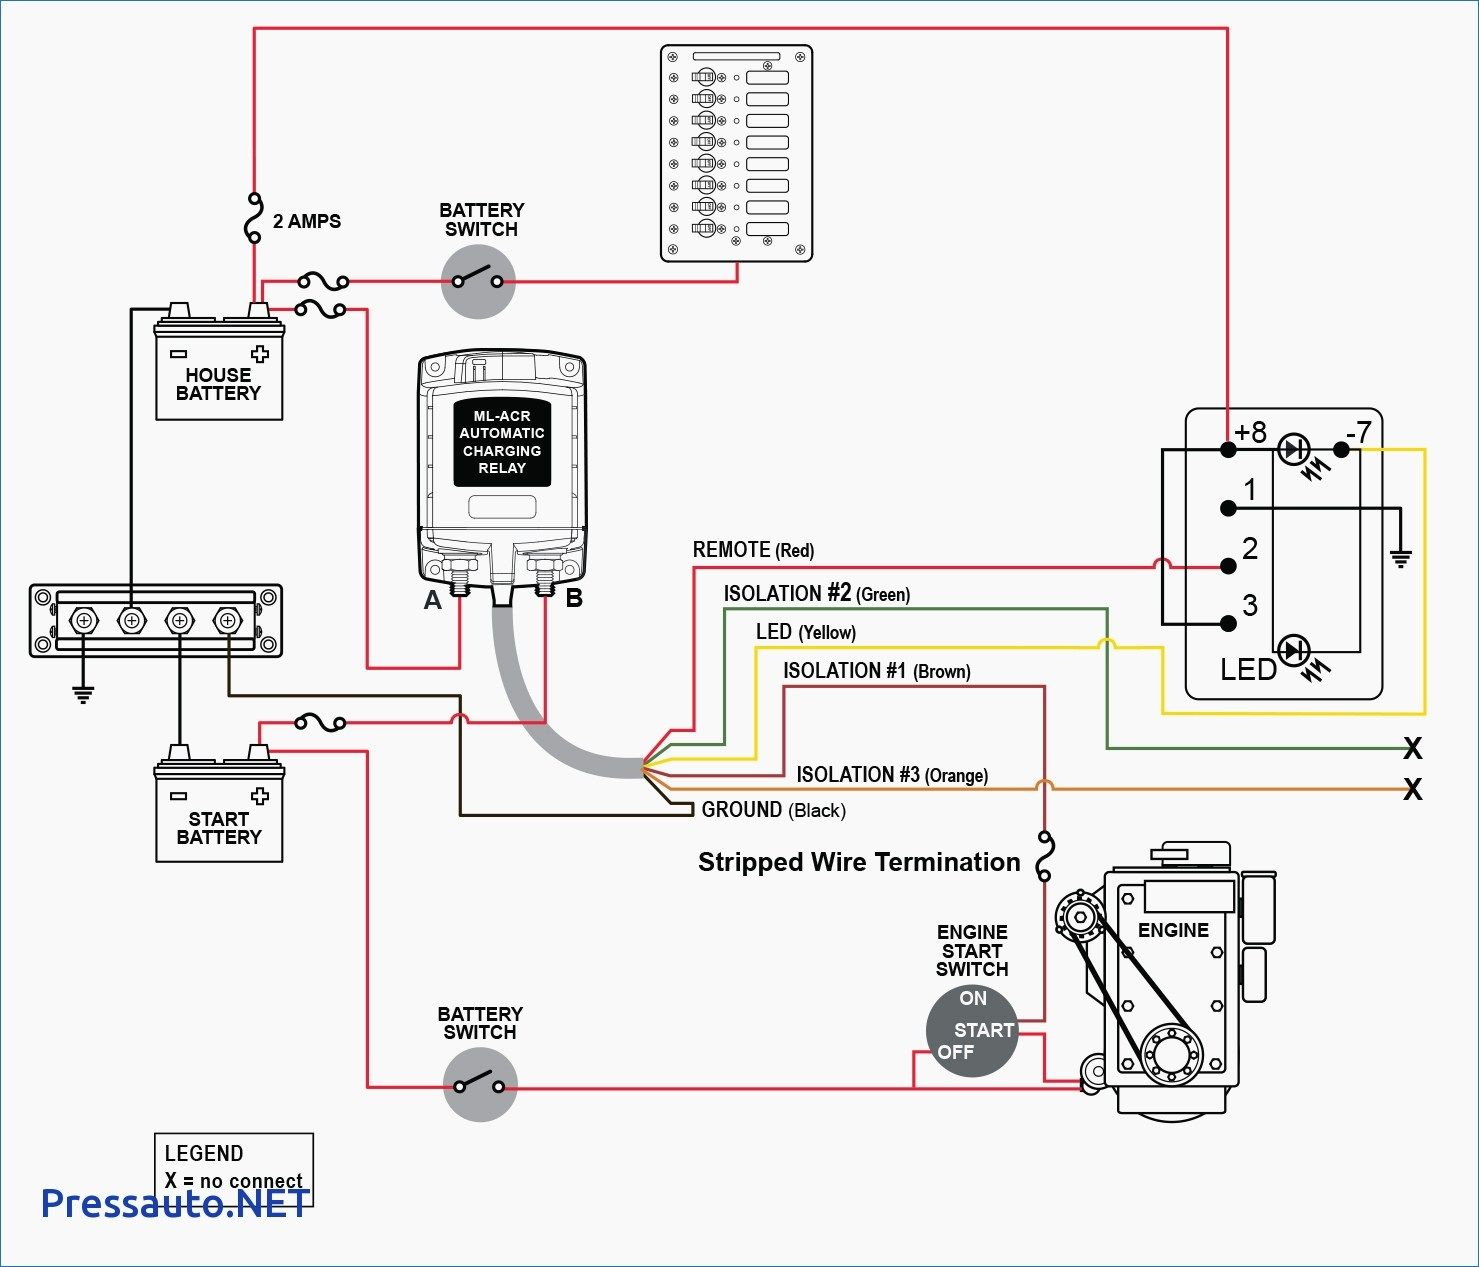 Marvel Wiring Diagram - Wiring Diagram & Cable Management on